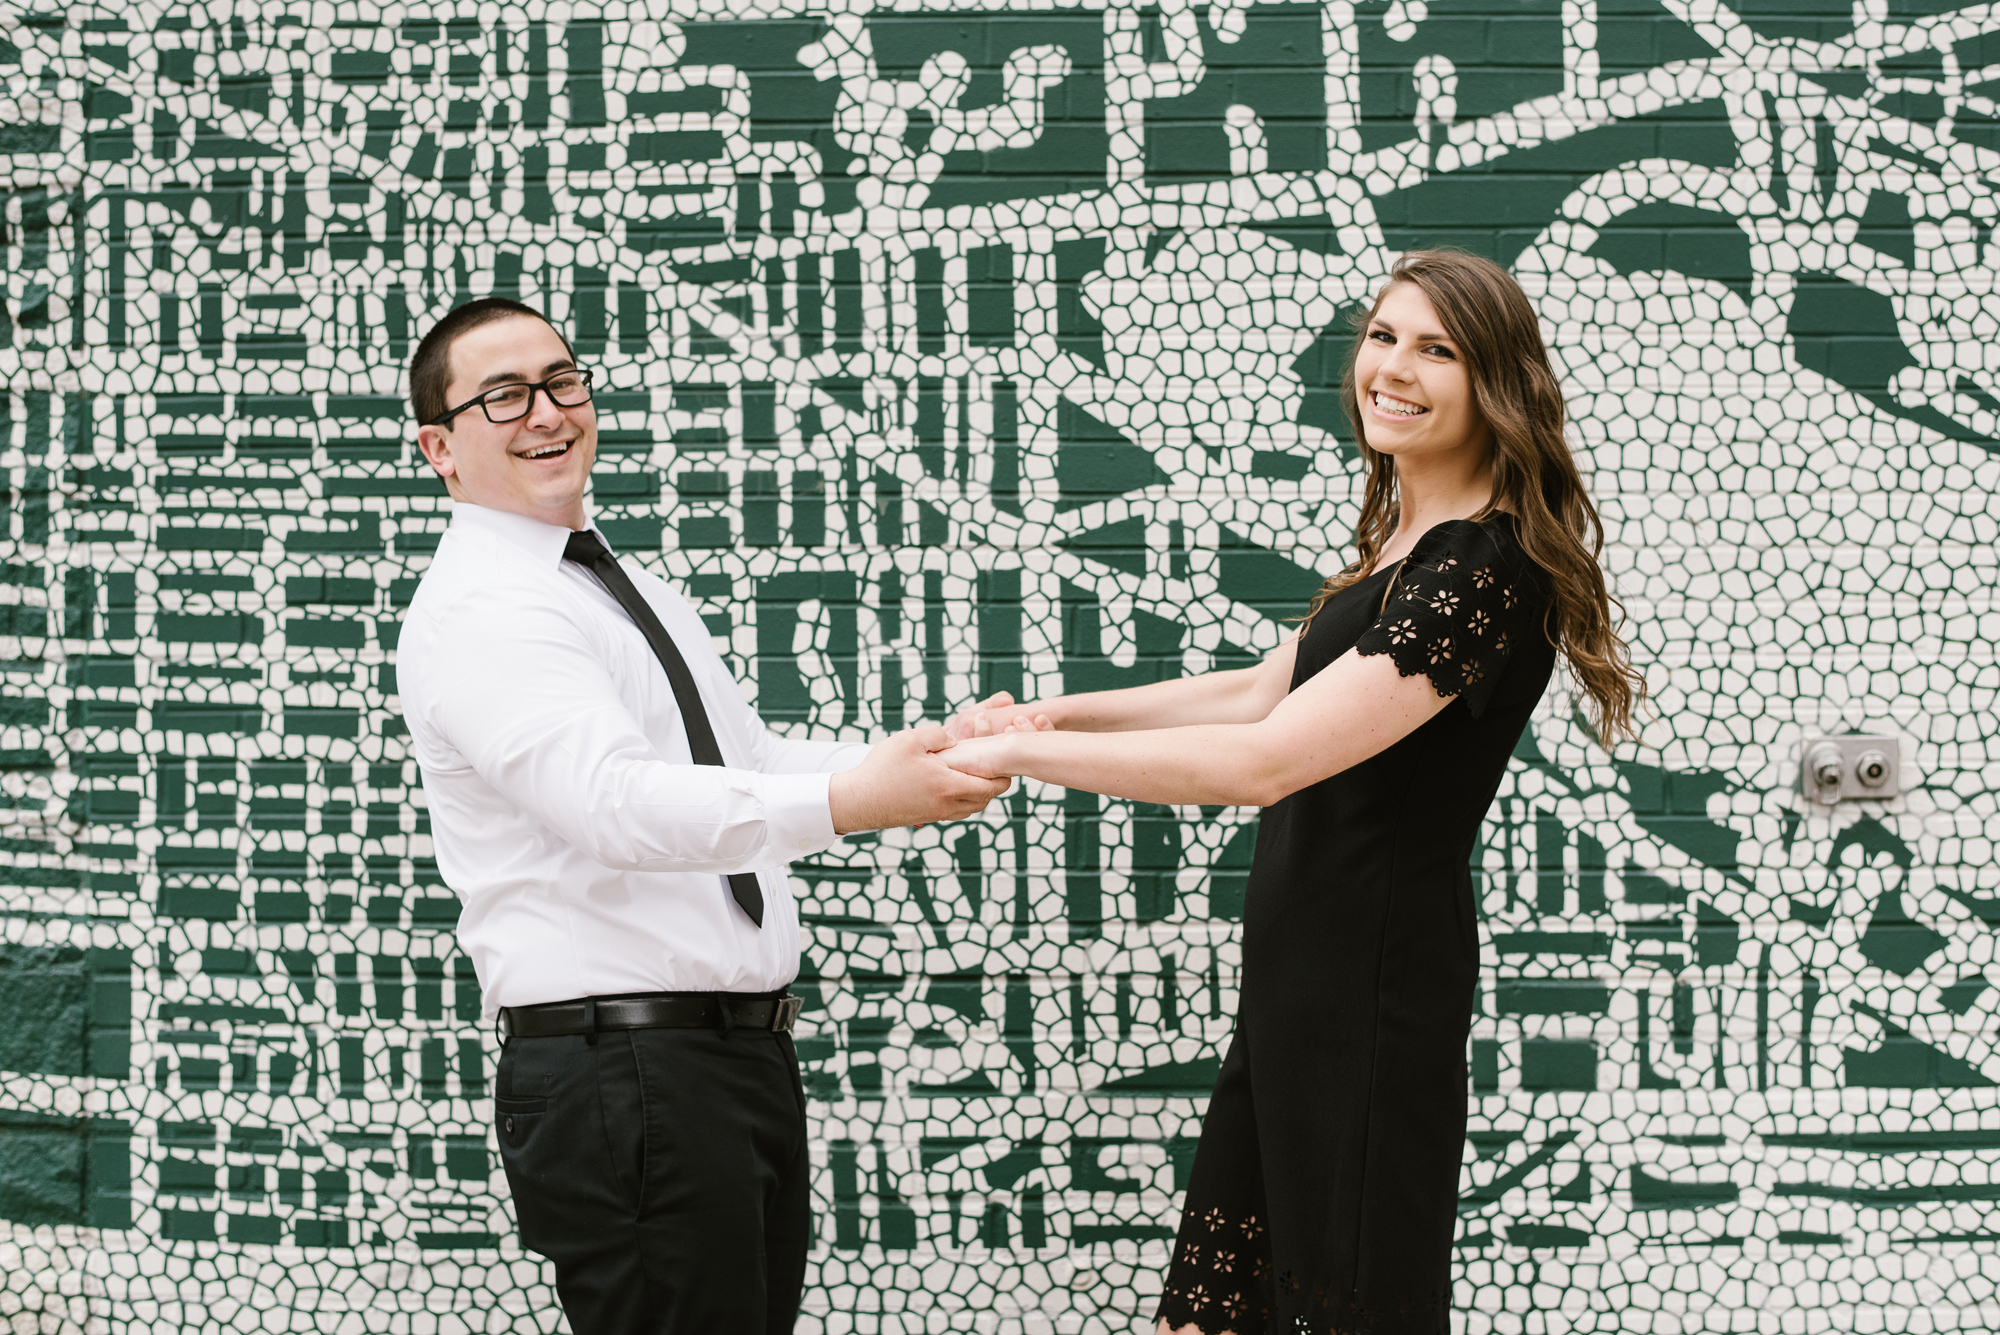 grand-rapids-downtown-spring-engagement-session (1).jpg